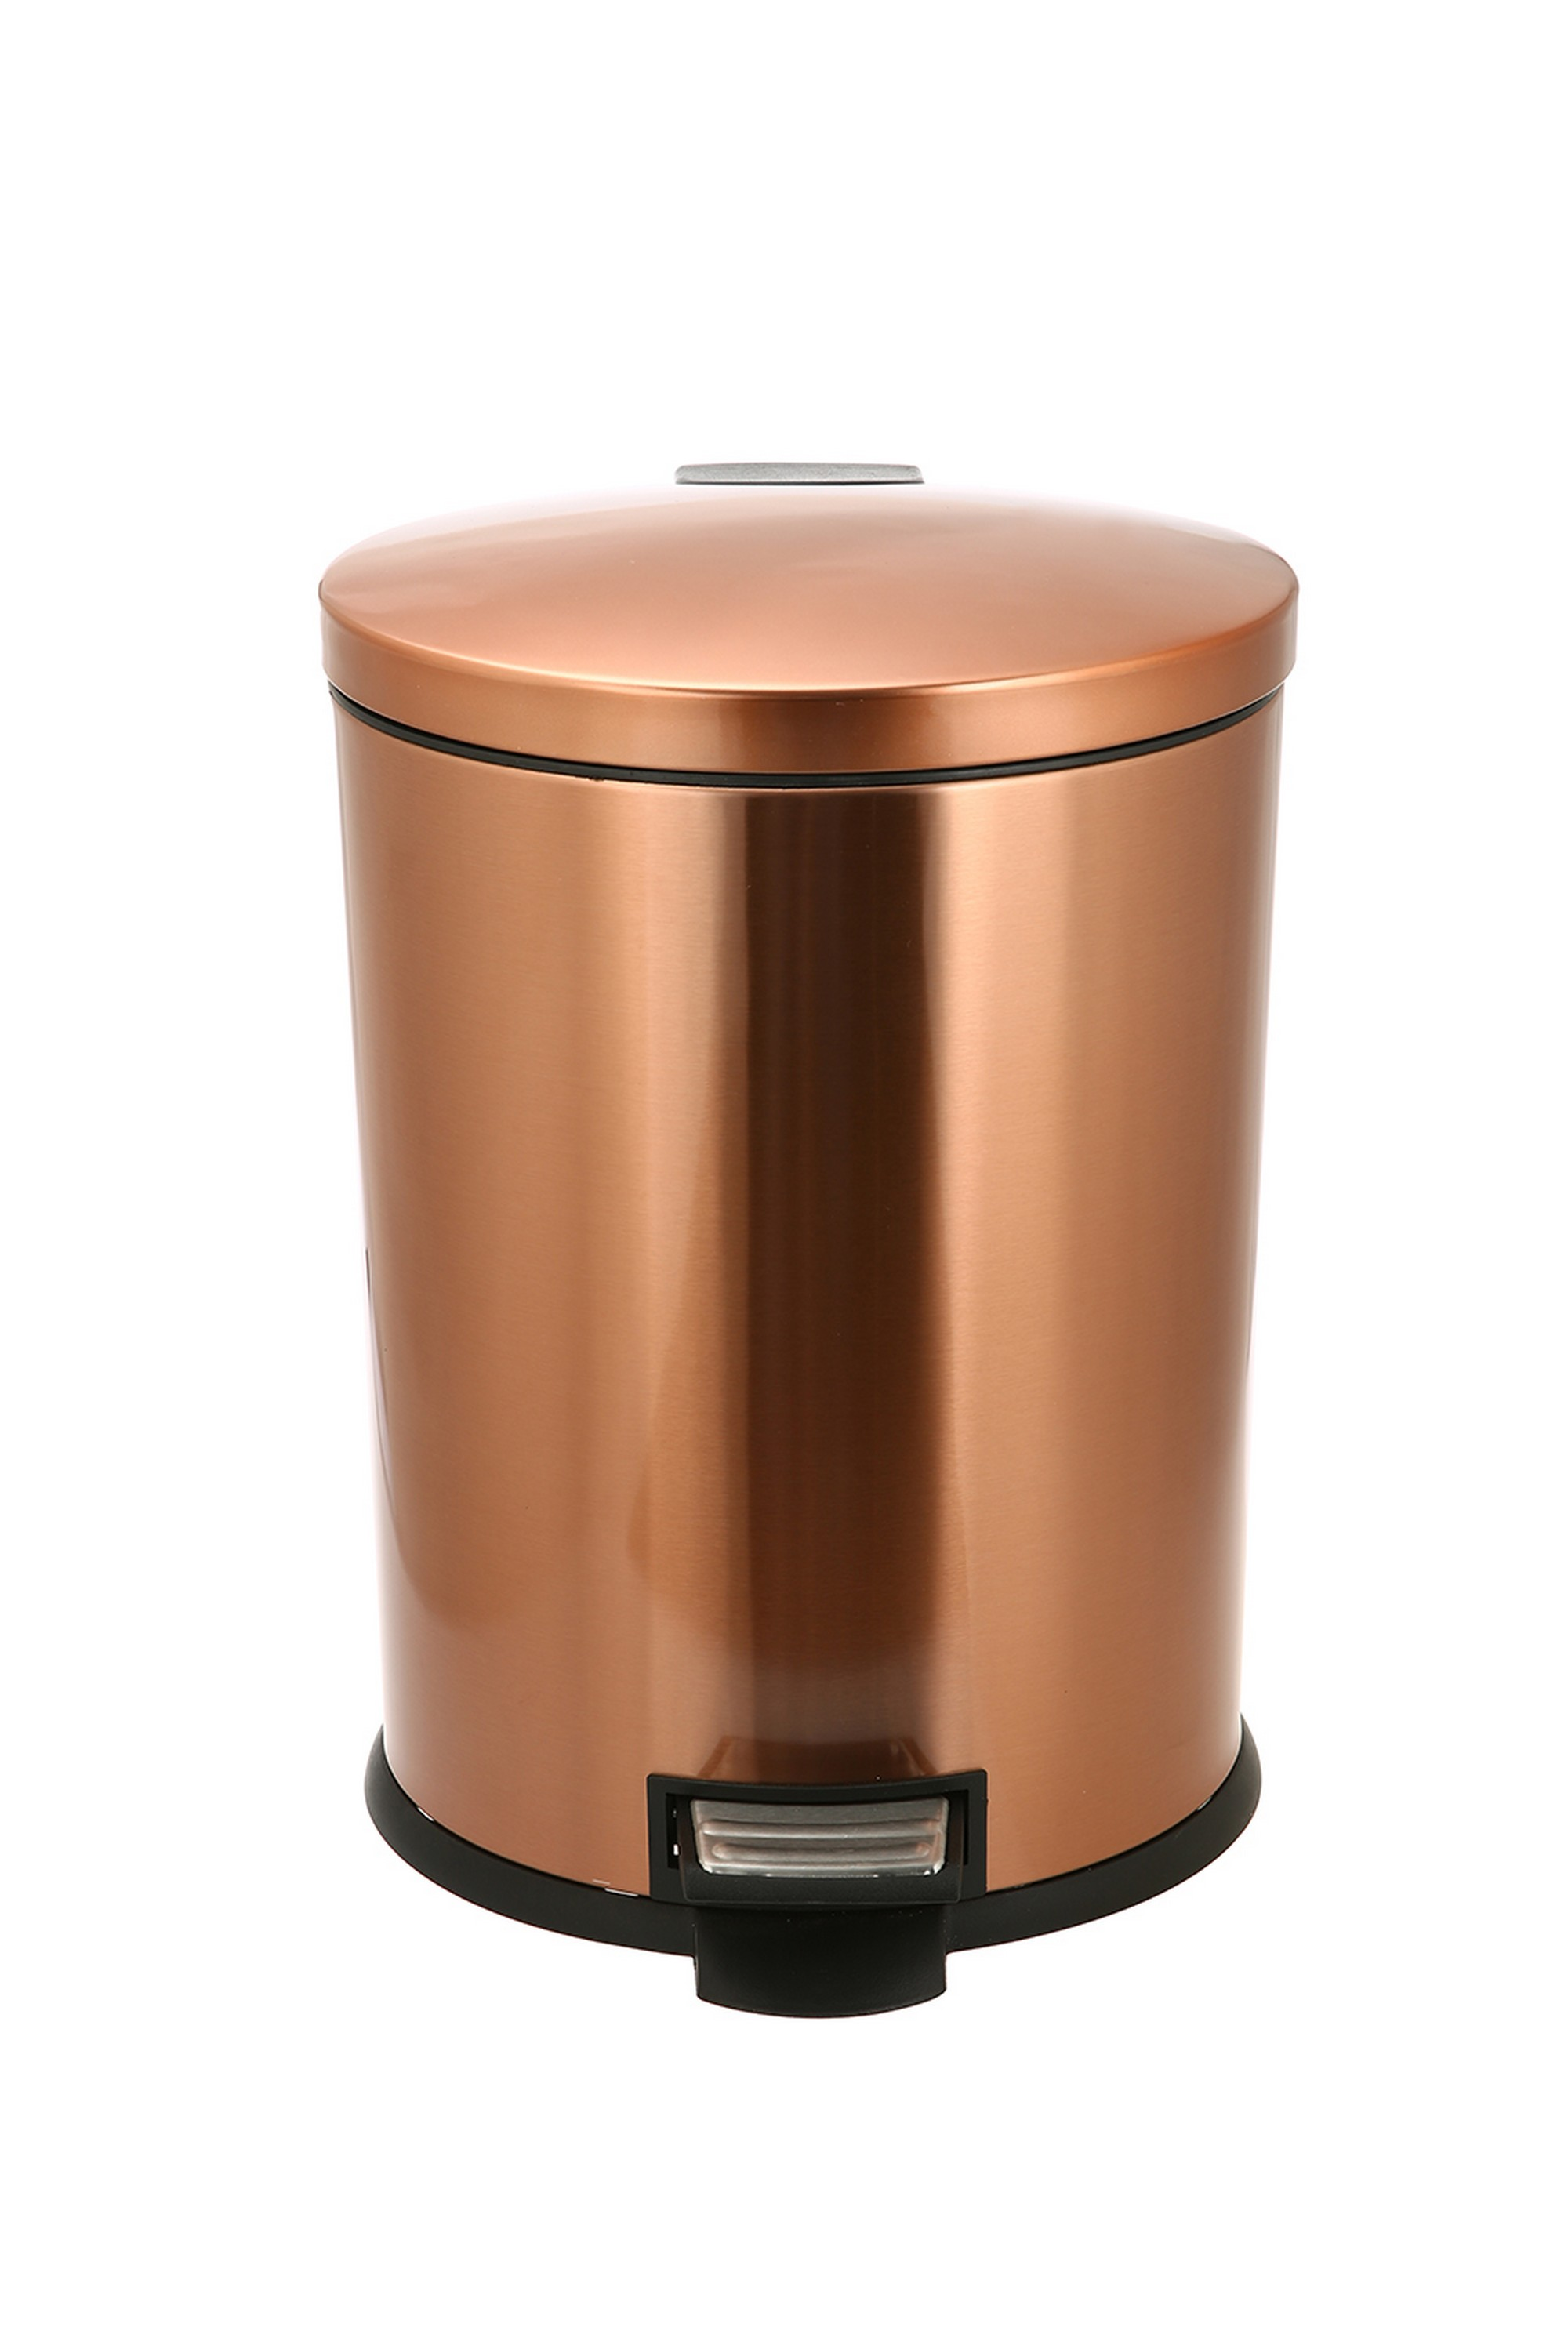 Copper Trash Can With Lid Better Homes And Gardens 10 5 Gallon Copper Oval Waste Can With Soft Close Lid